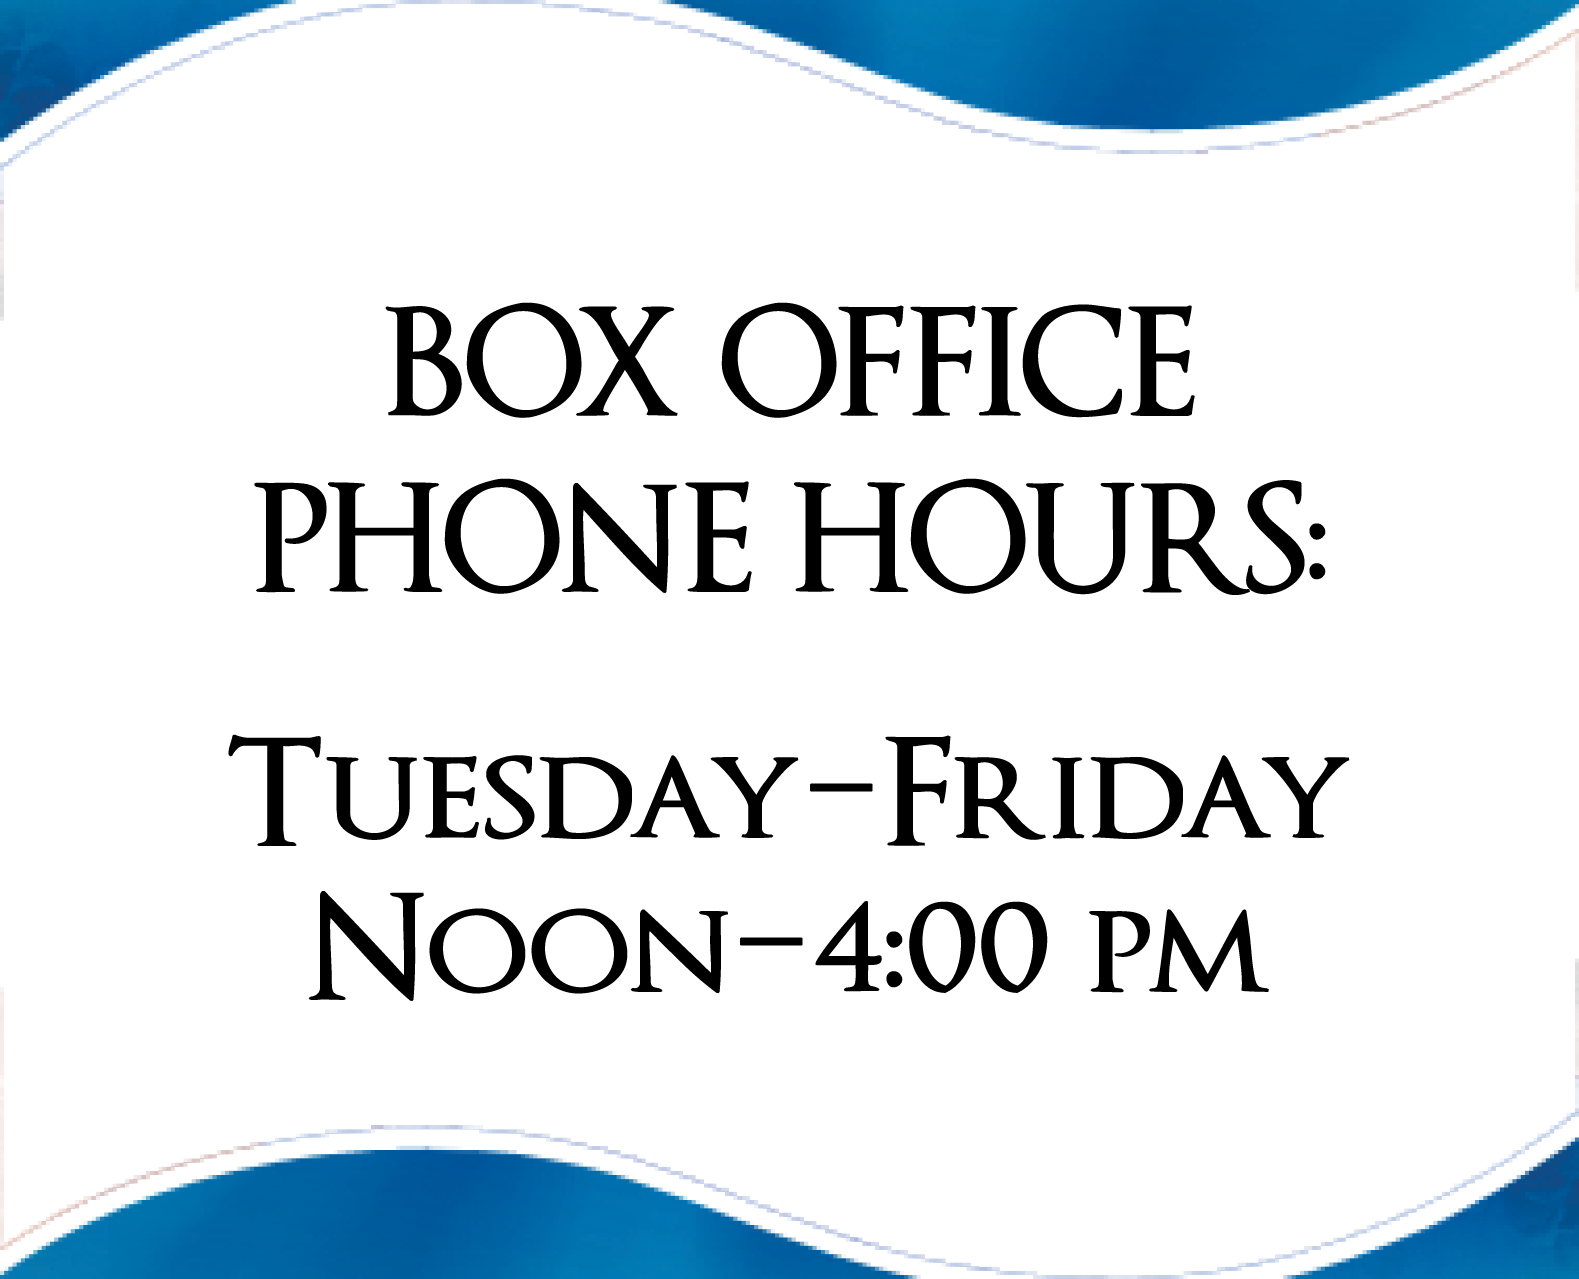 Box Office Phone Hours